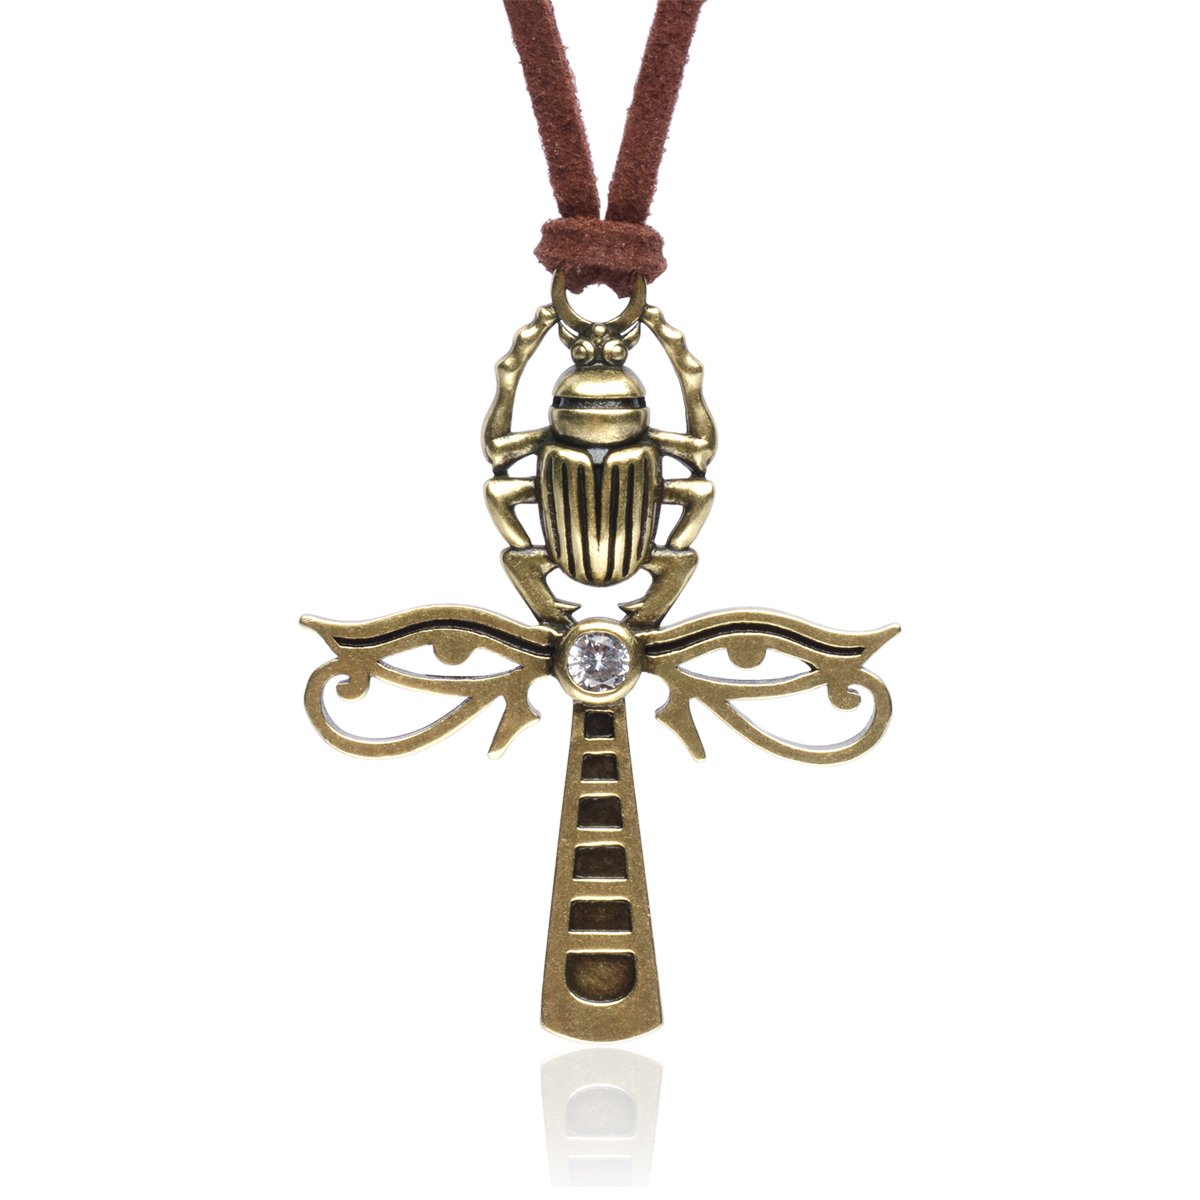 Karsee Ankh Cross Charm Pendant Necklace Horus Eye and Egyptian Scarab Integrated Retro Copper Jewelry Gifts Unisex Brown Adjustable Sliding Knot Leather Cord, Ancient Bronze